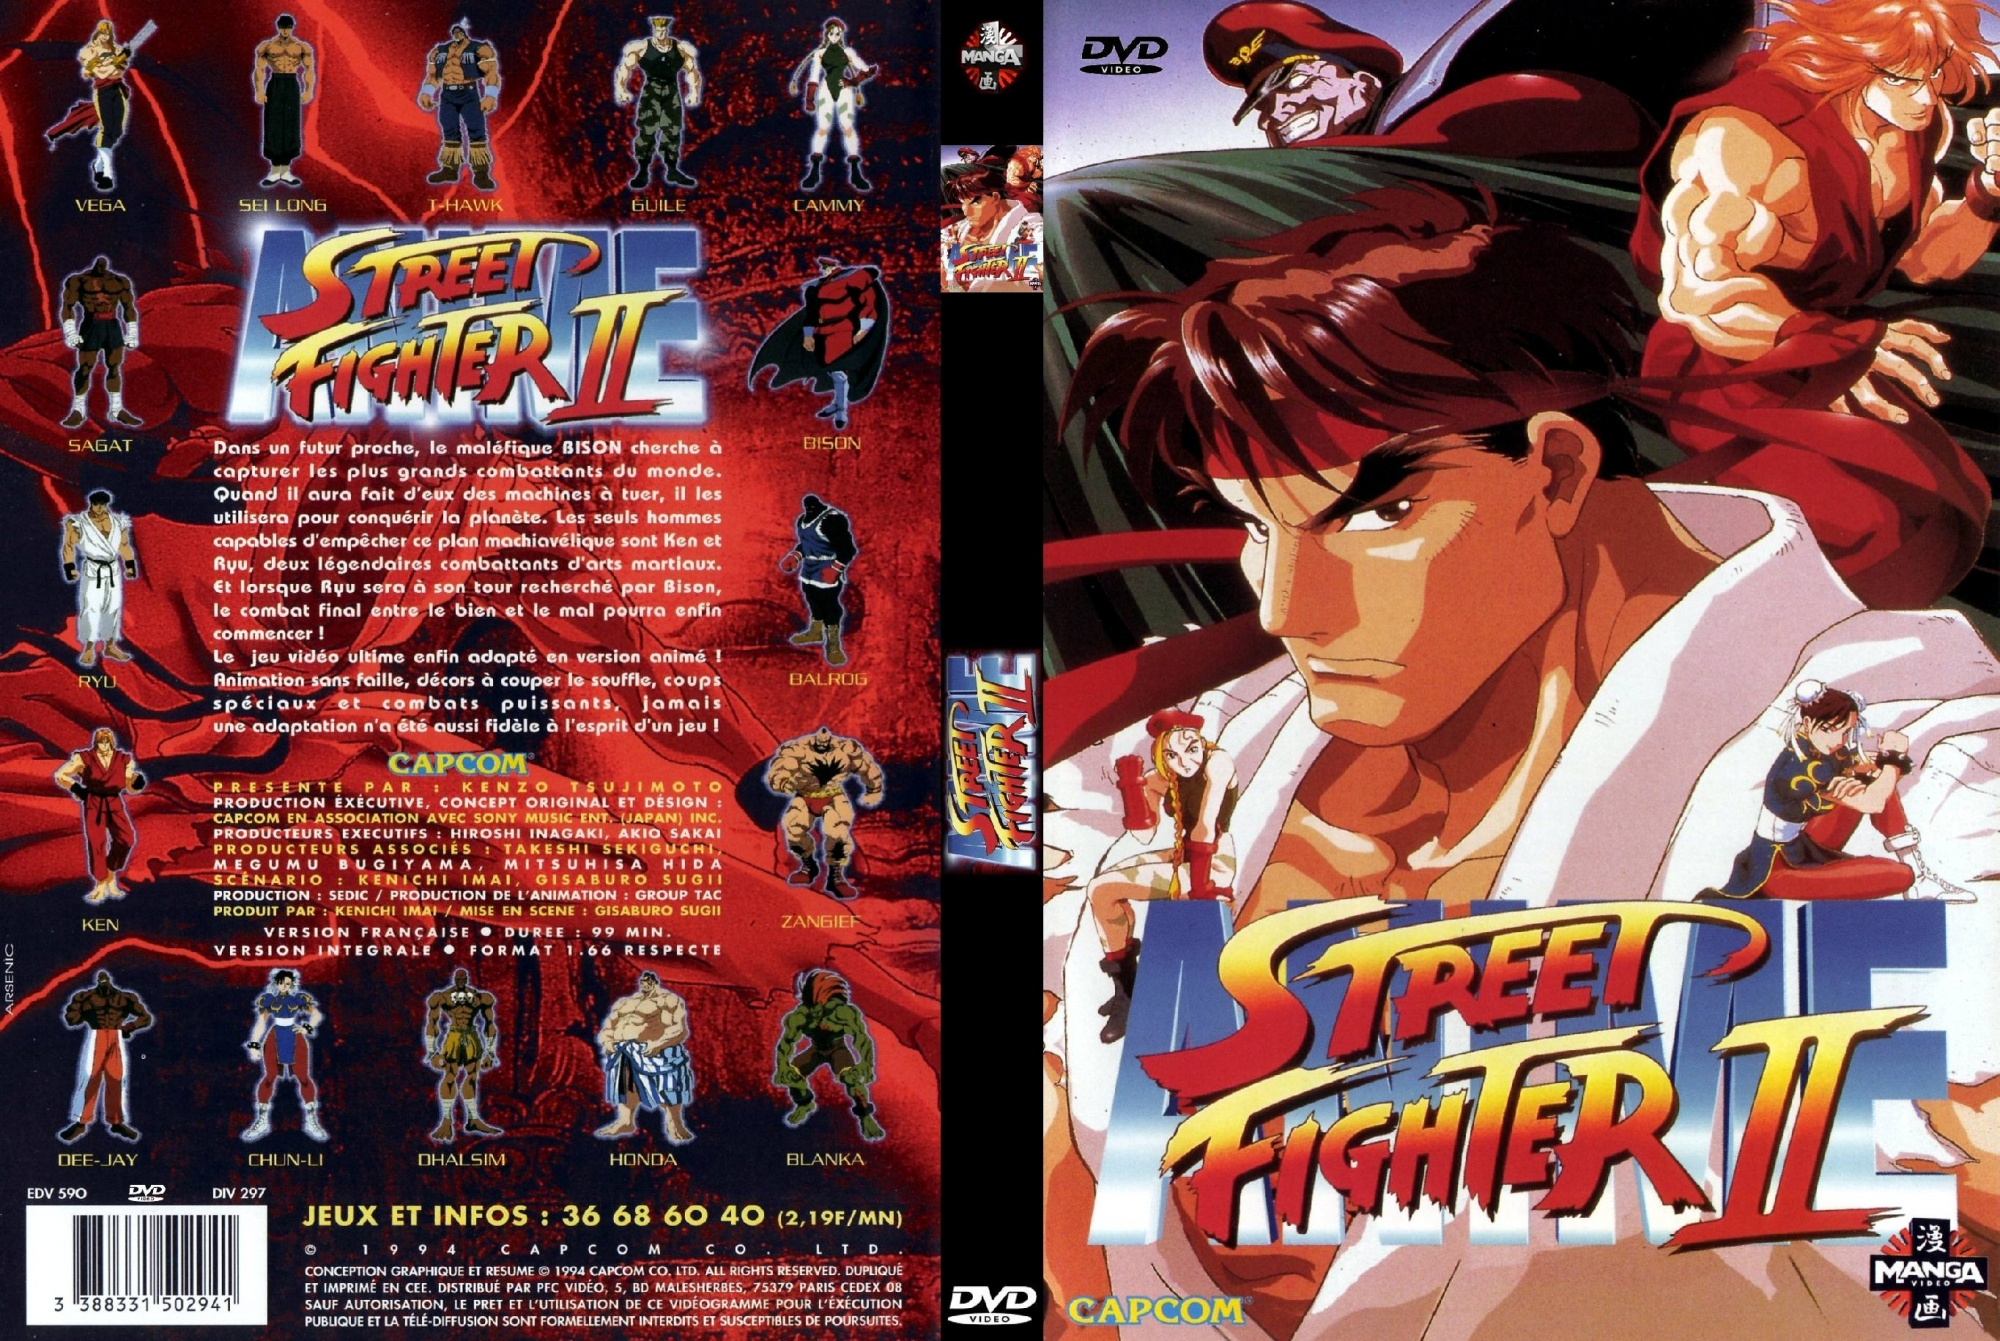 Street Fighter Ii The Animated Movie Region 1 Blu Ray Shop